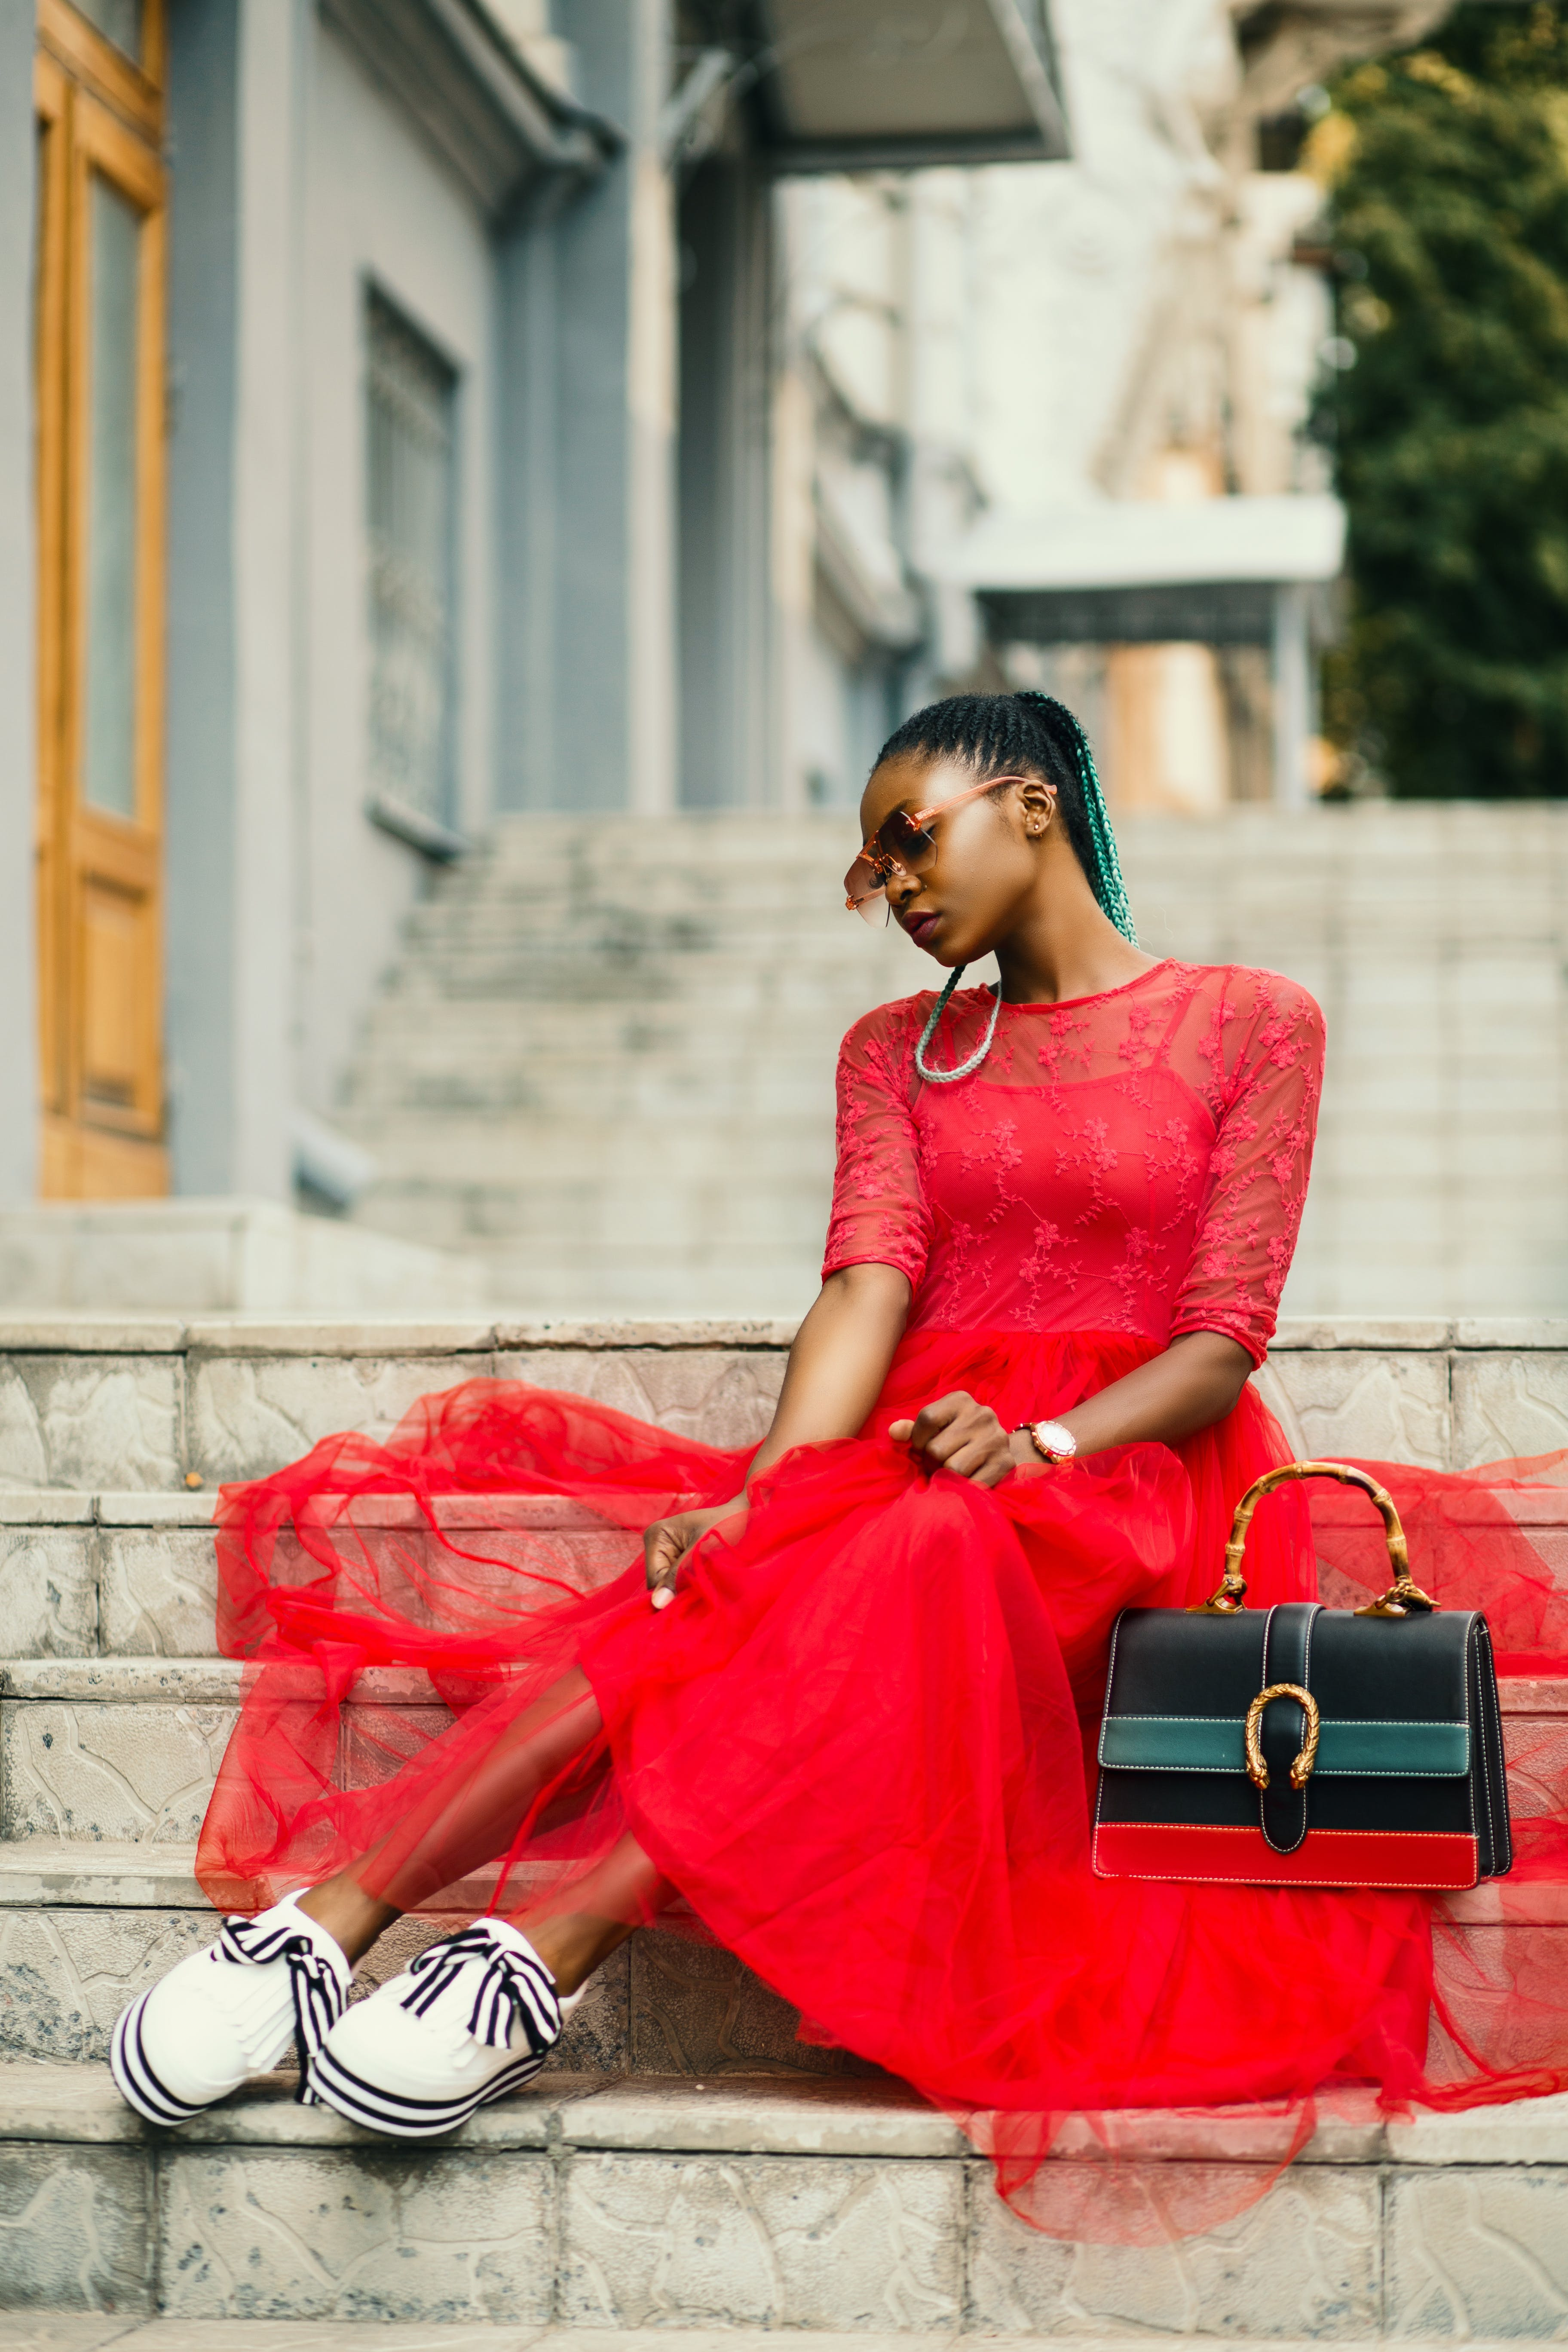 Woman Wearing Red Long-sleeved Dress Near Black Leather Bag Sitting on Concrete Stairs Posing for Photoshoot